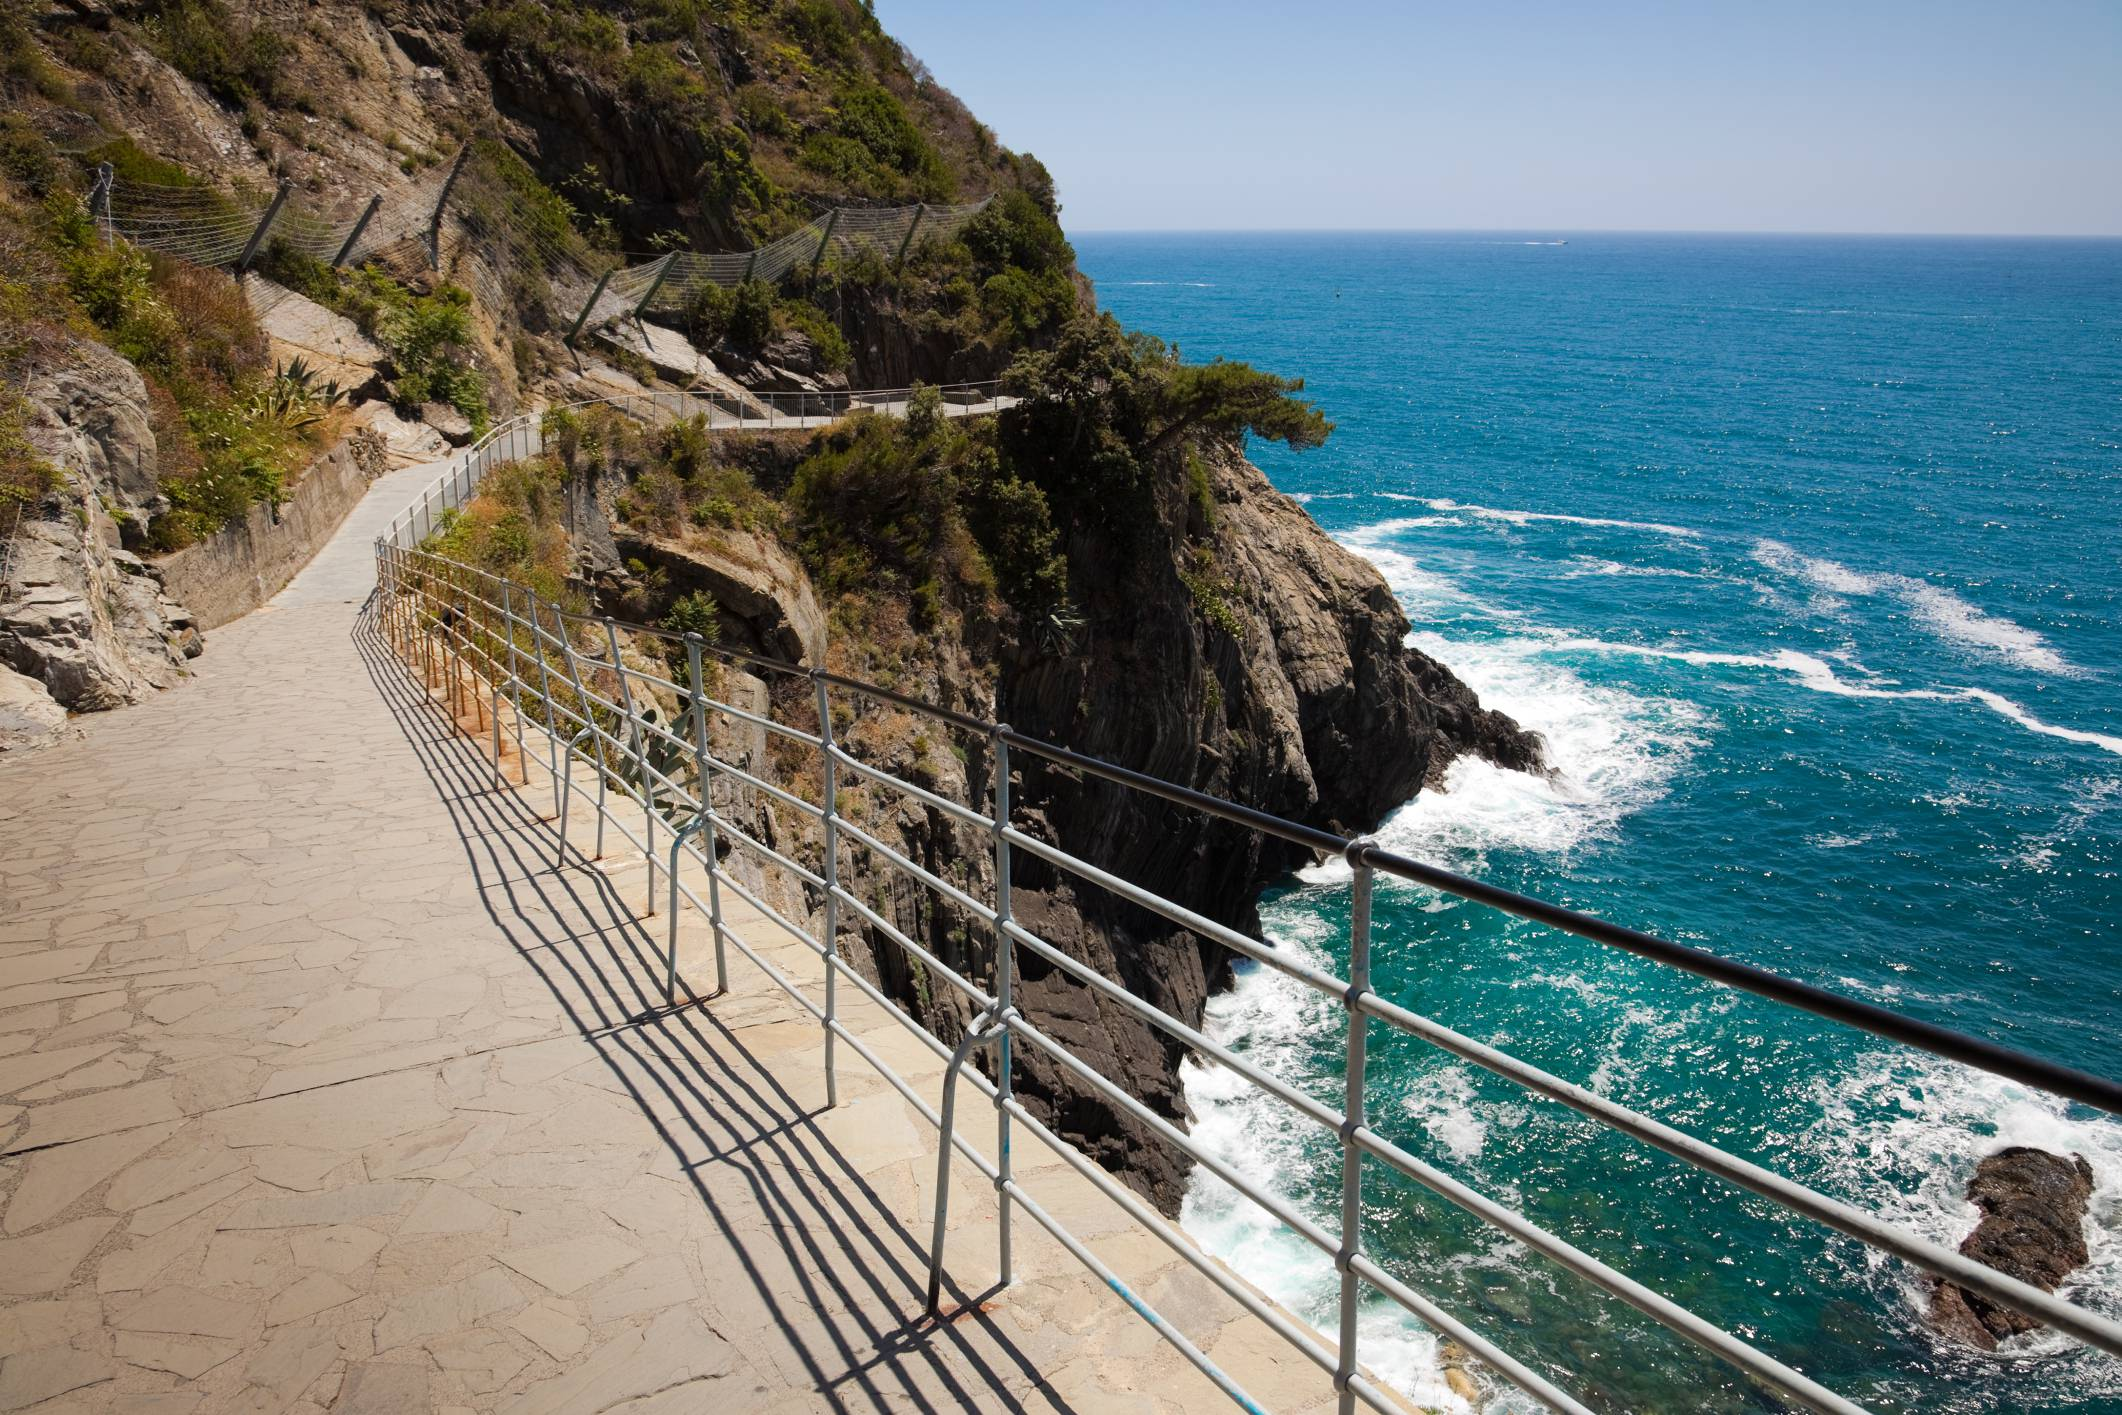 cinque_terre_via_dell_amore_ThinkstockPhotos-133993475